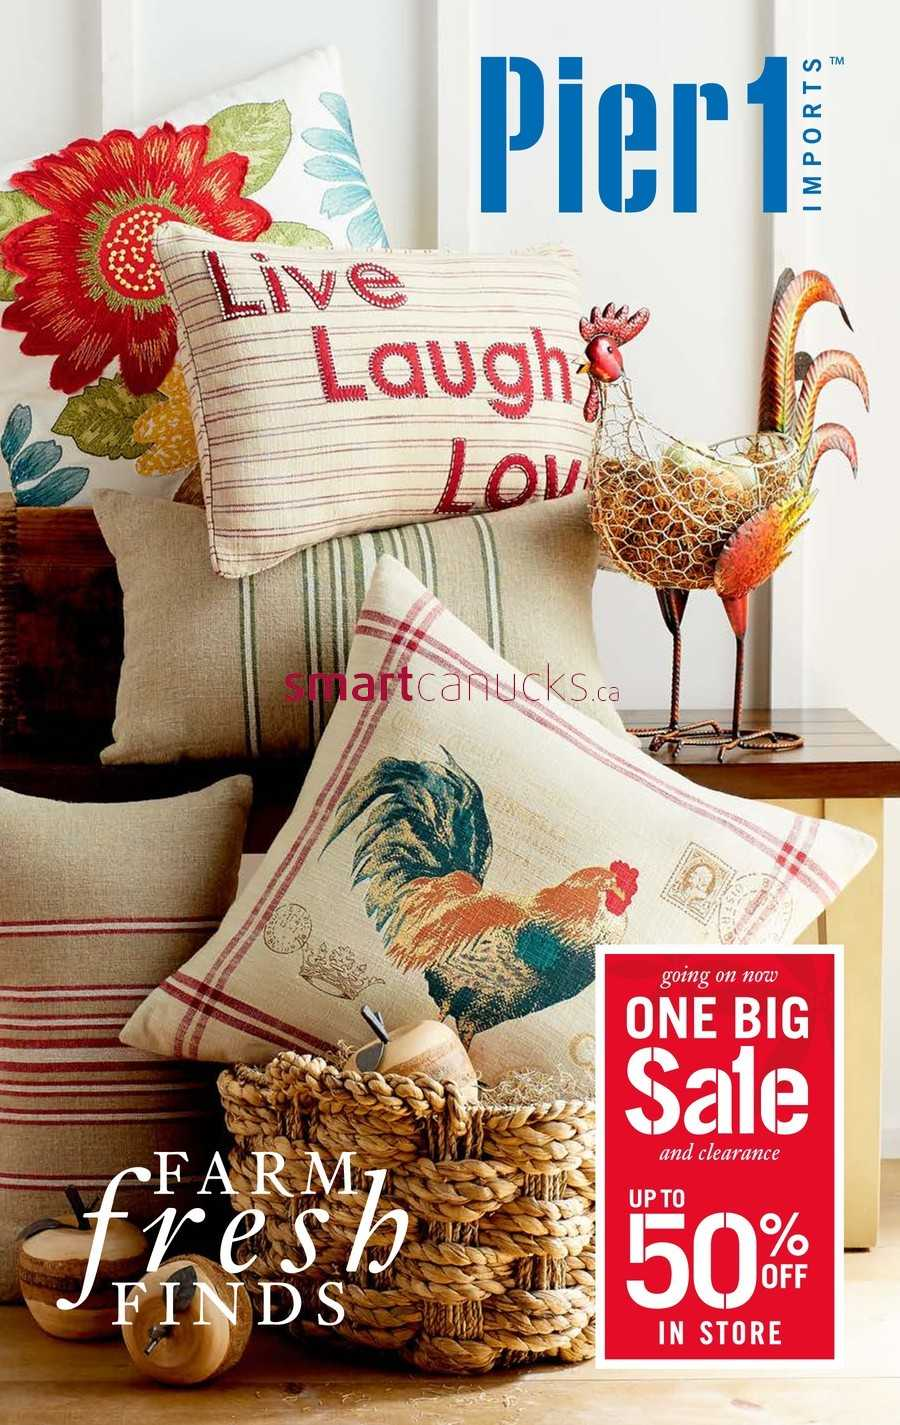 Pier 1 Imports Flyer June 24 to July 31. Pier 1 Imports Canada Flyers